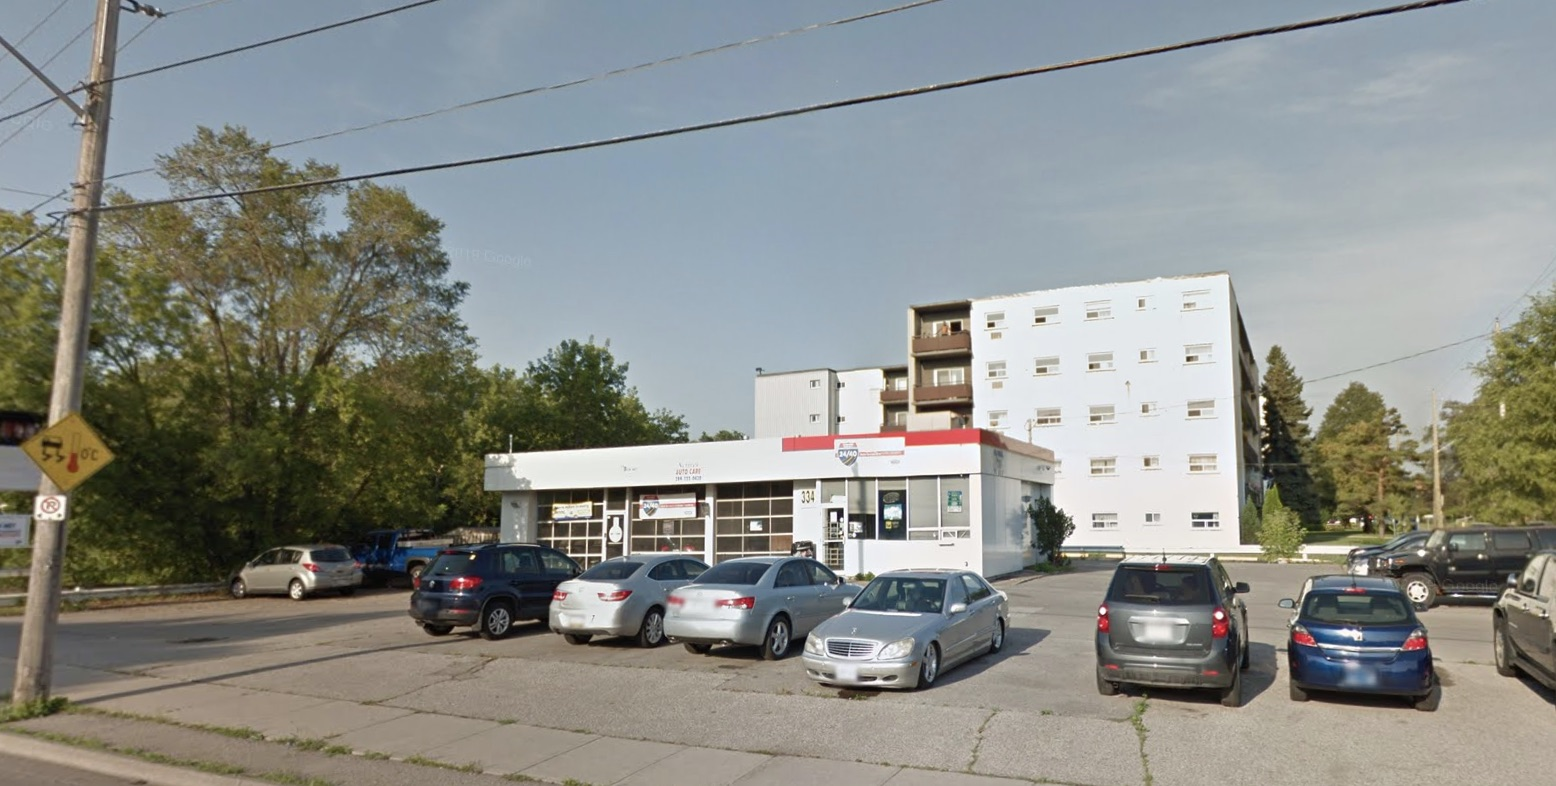 334 Park Road South, Oshawa | Retail/ Automotive Land for Sale